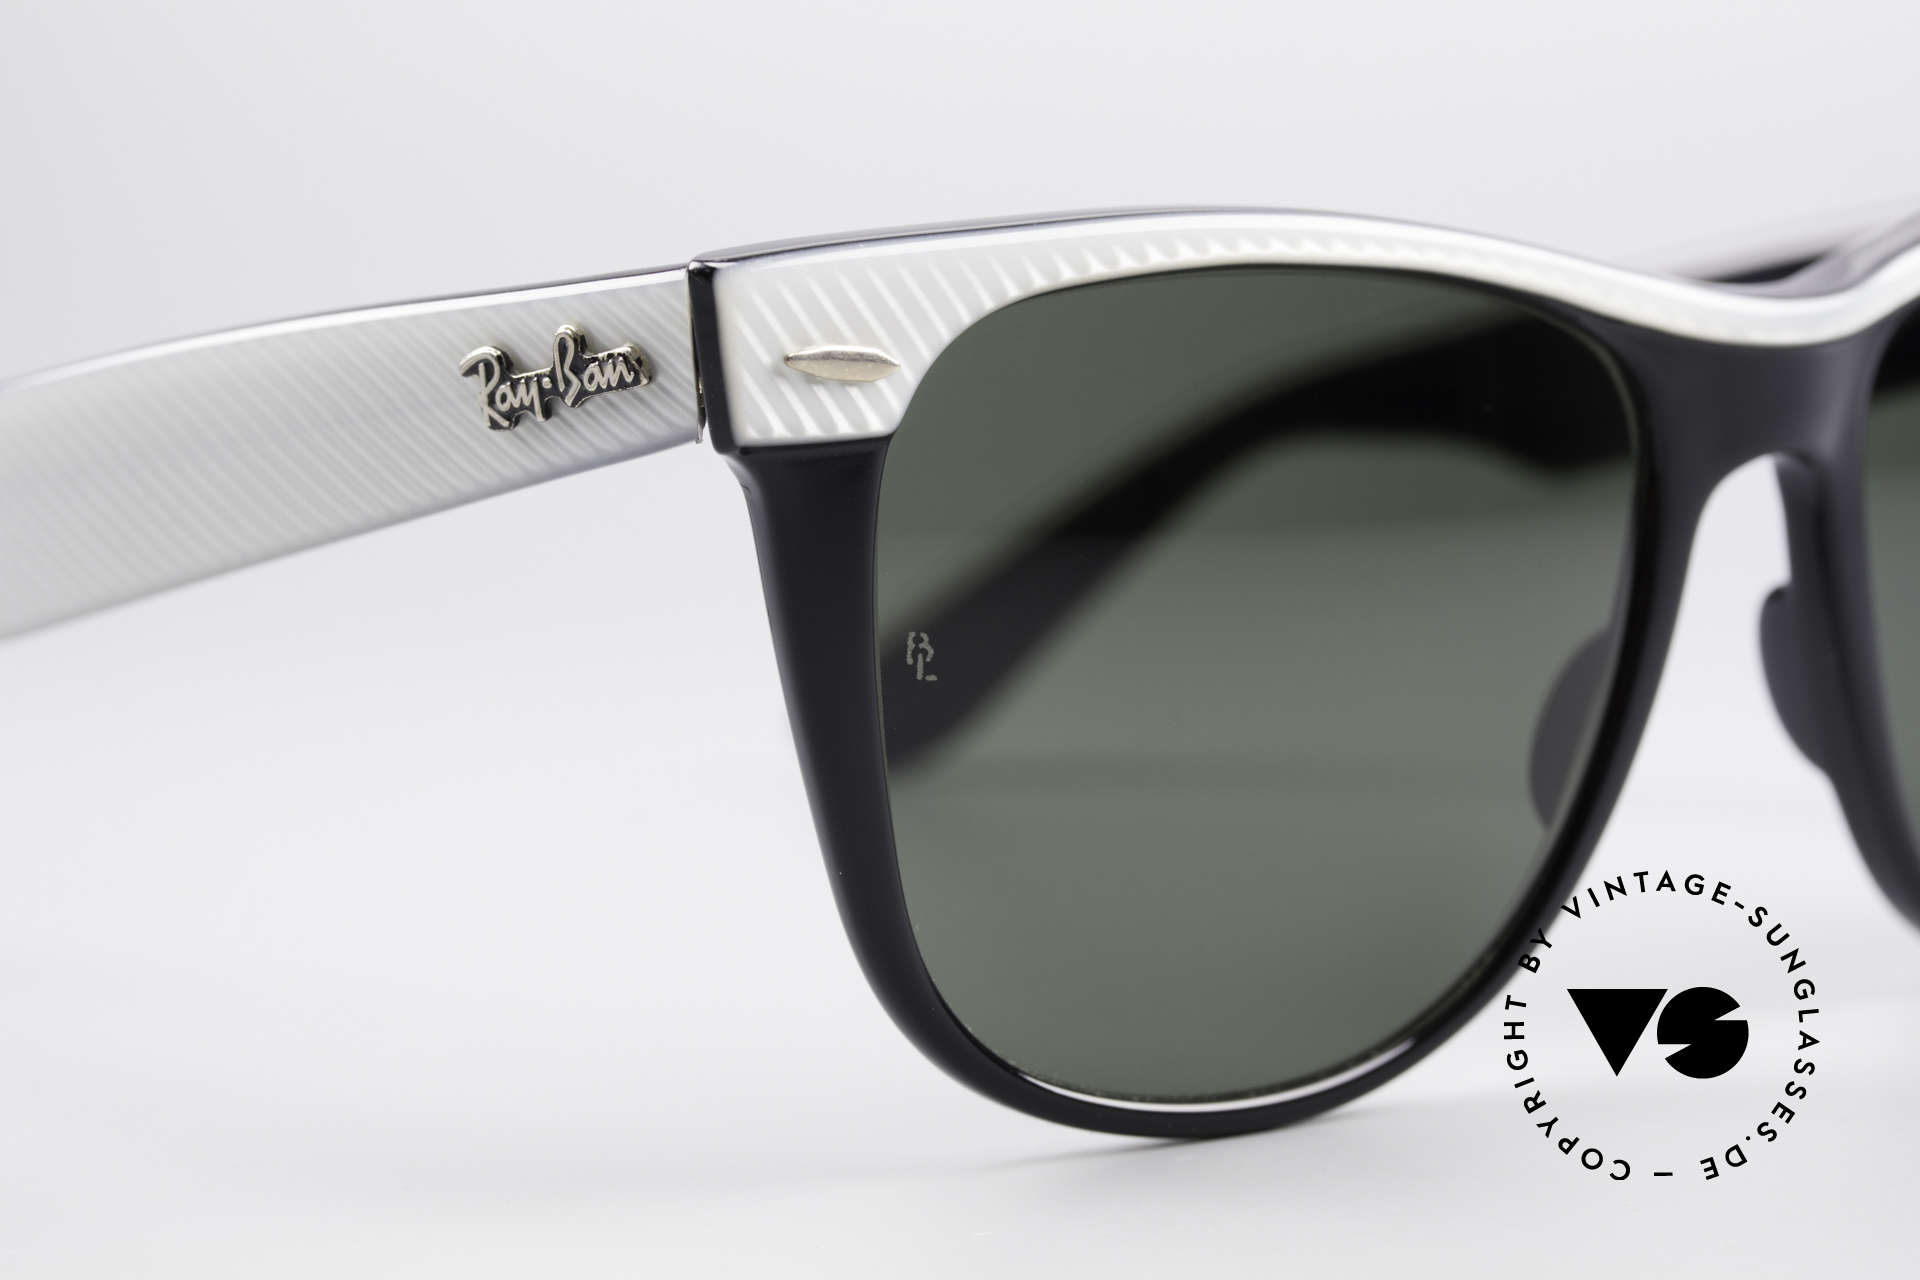 Ray Ban Wayfarer II B&L USA Original Wayfarer, NO RETRO sunglasses, but an authentic old original, Made for Men and Women